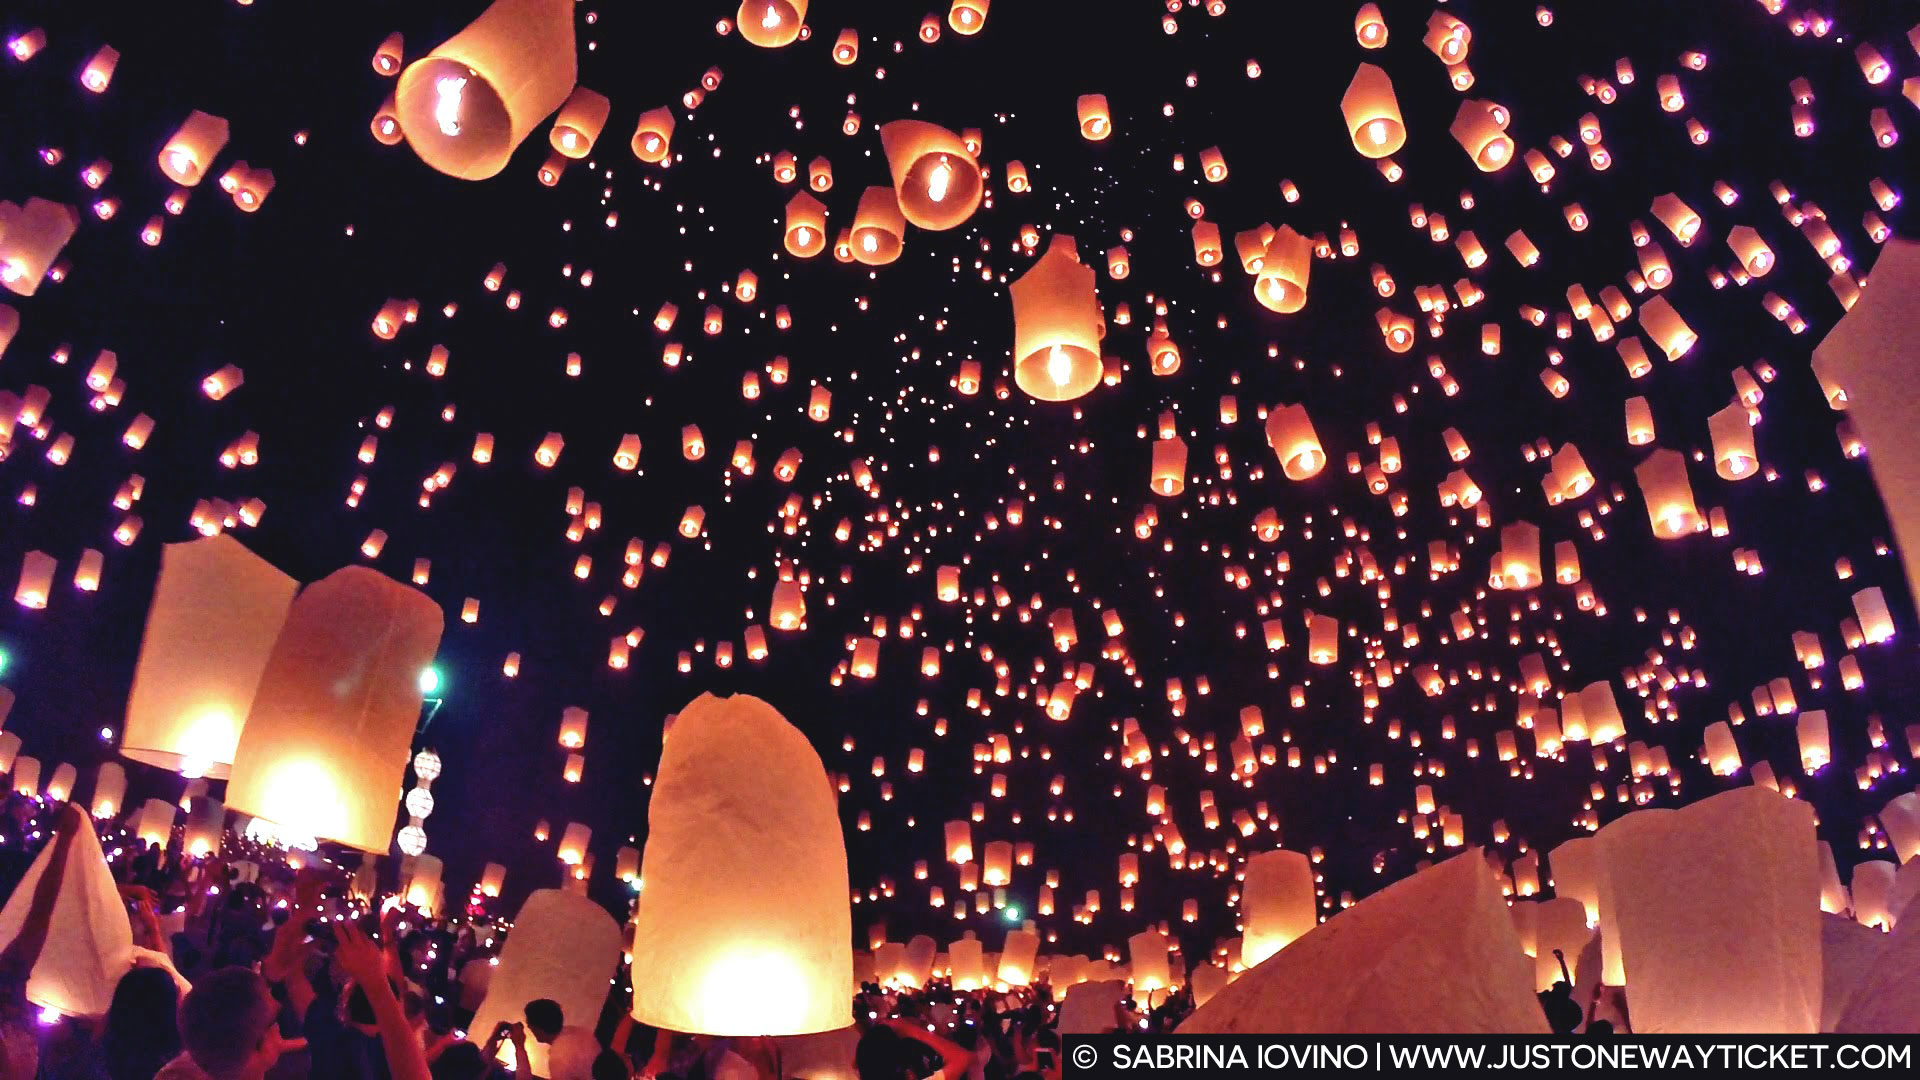 enchanting scenes from loy krathong magical lantern festival in